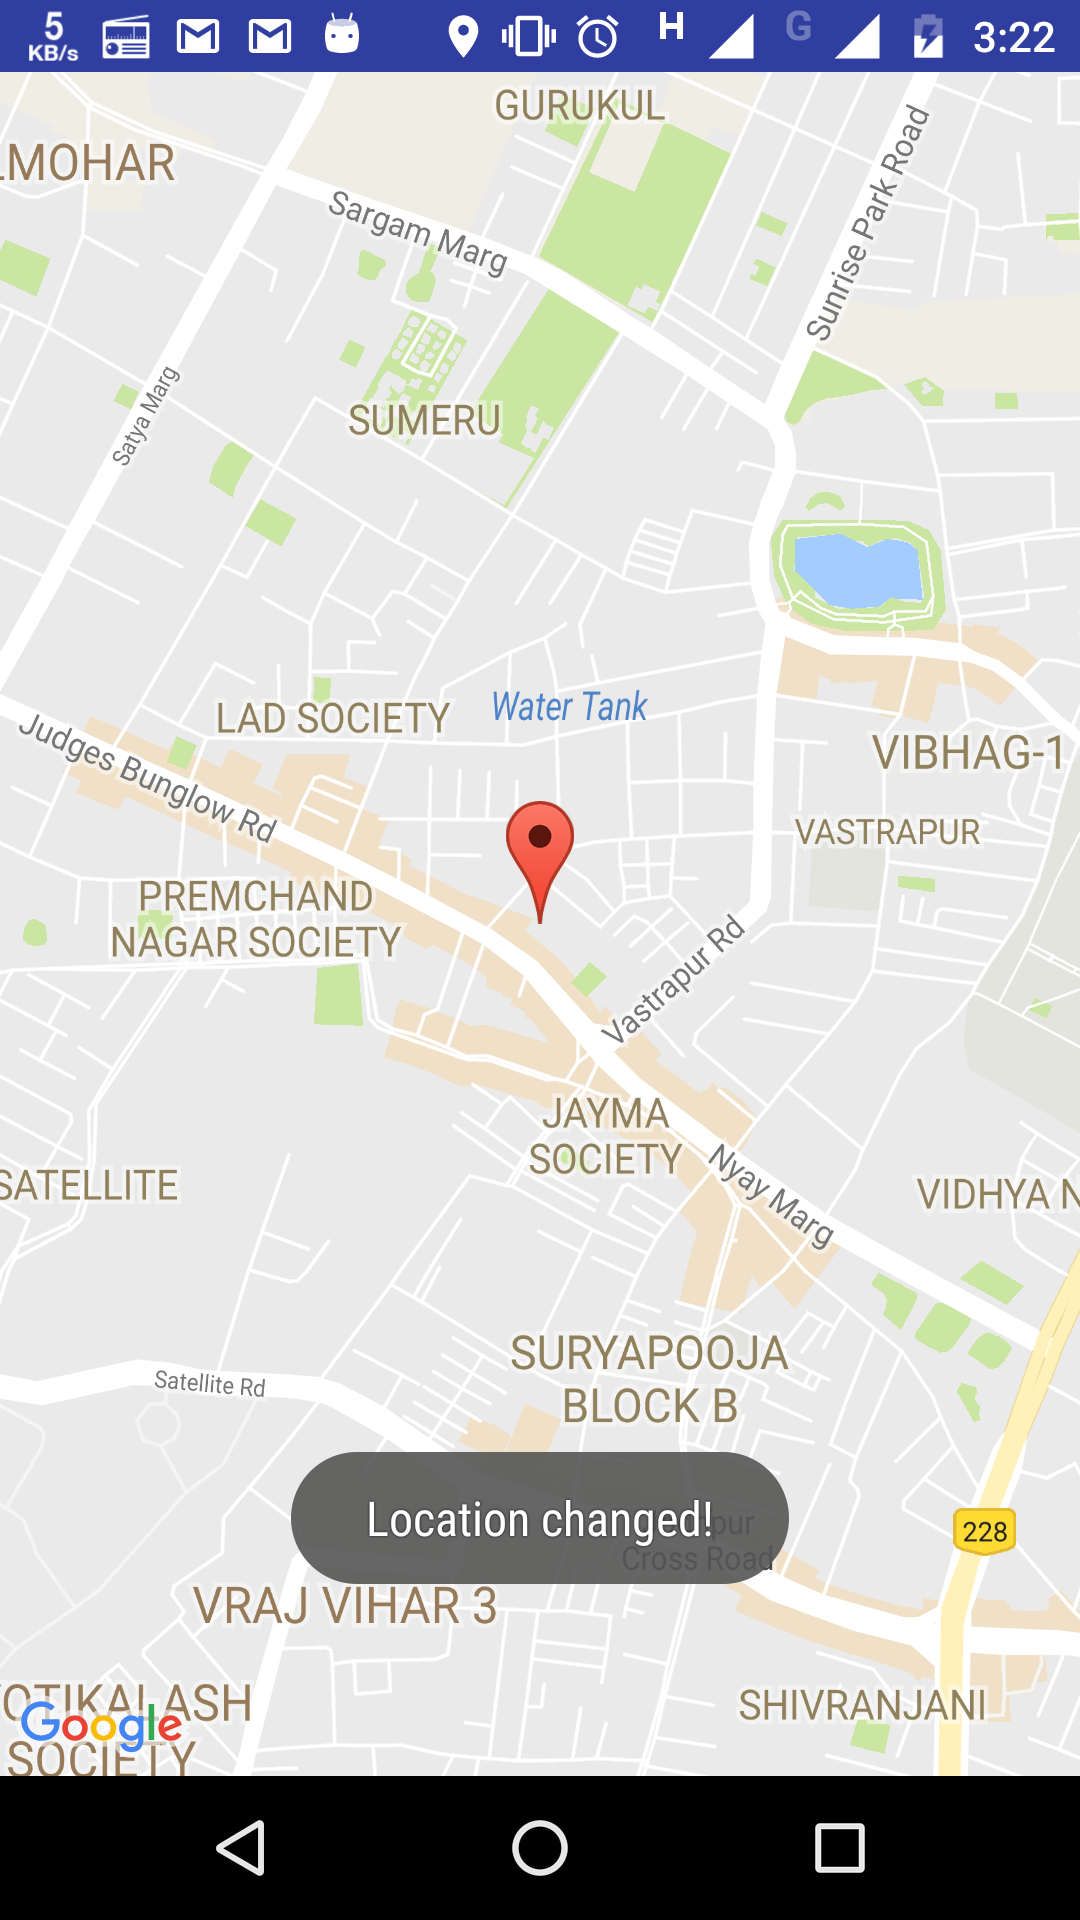 How to Obtain Current Location Using Android Location